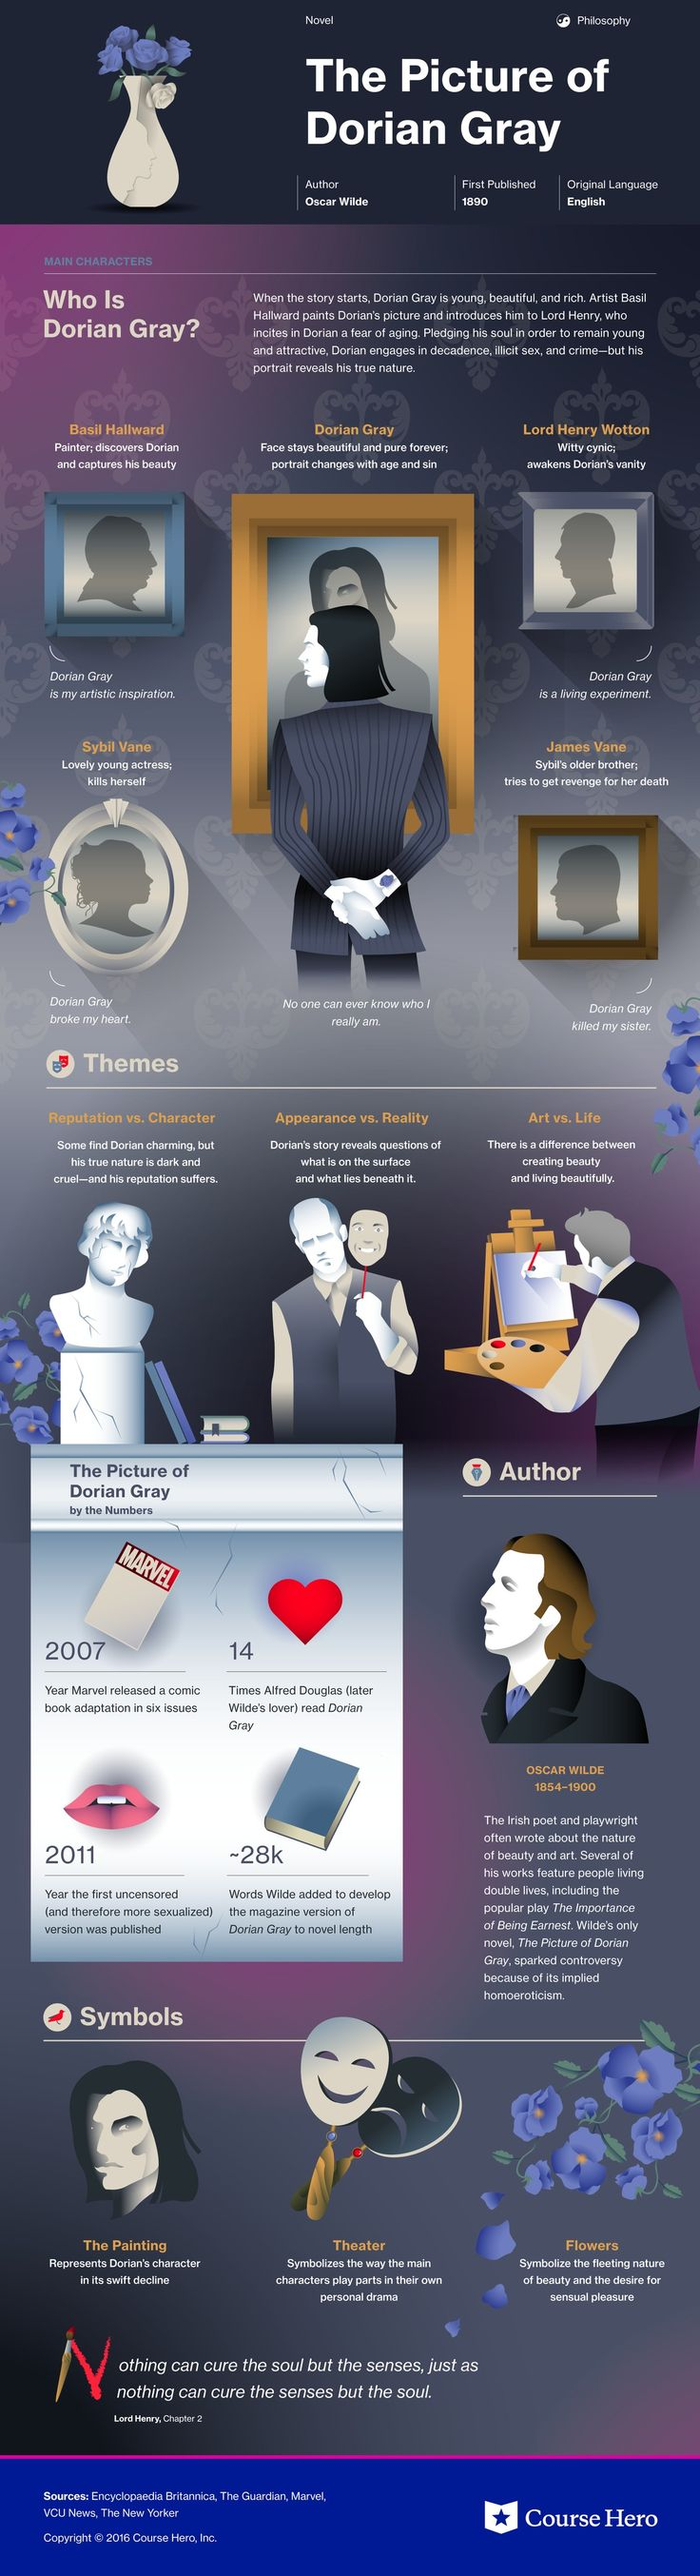 The Picture of Dorian Gray Infographic | Course Hero